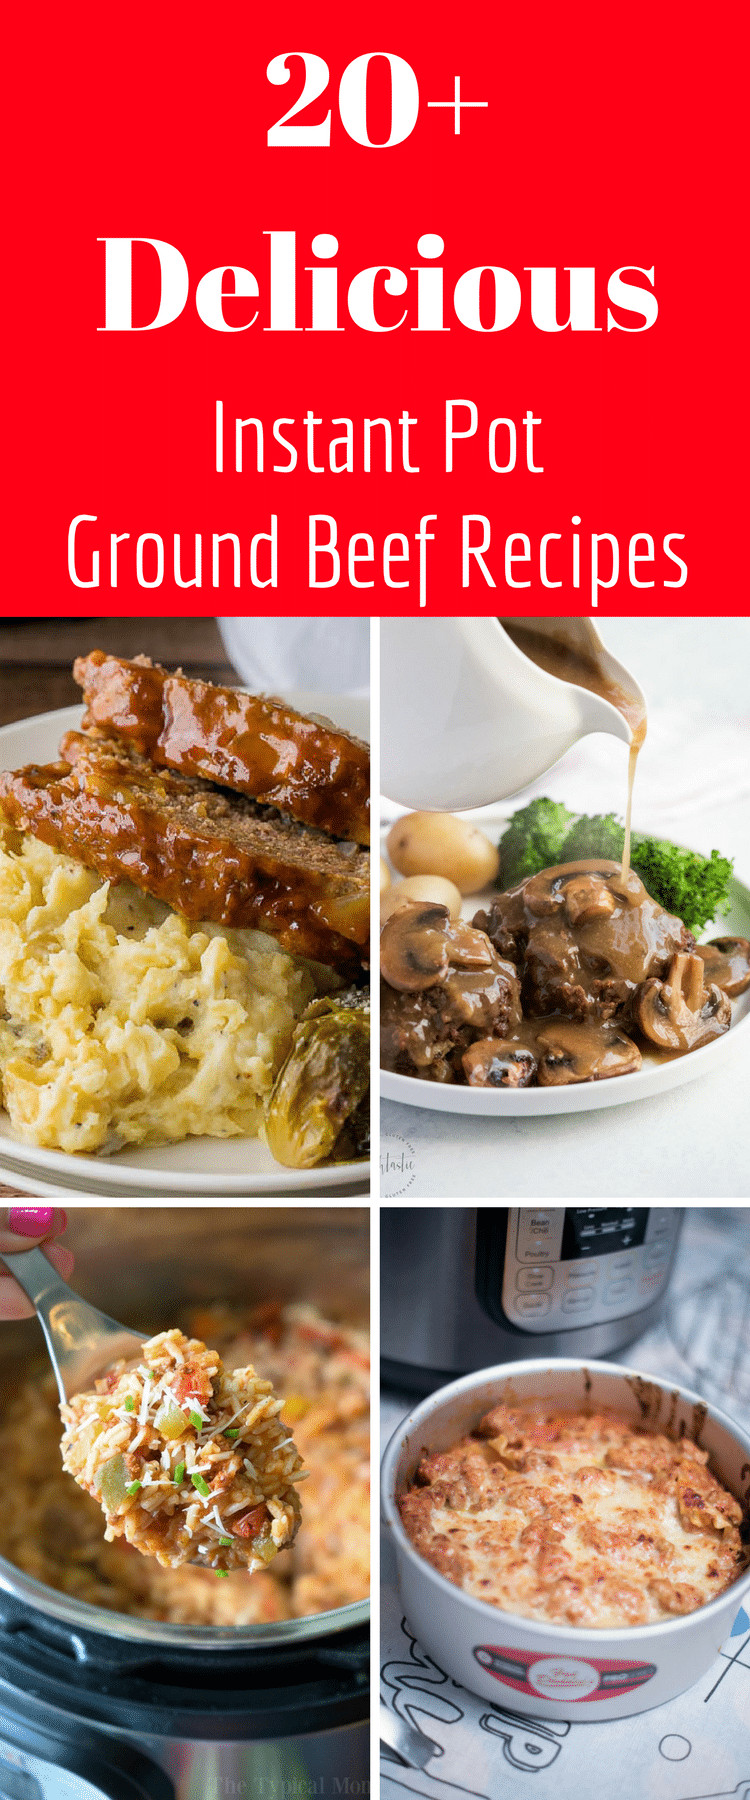 Instant Pot Recipes Beef  20 of the BEST Instant Pot Ground Beef Recipes